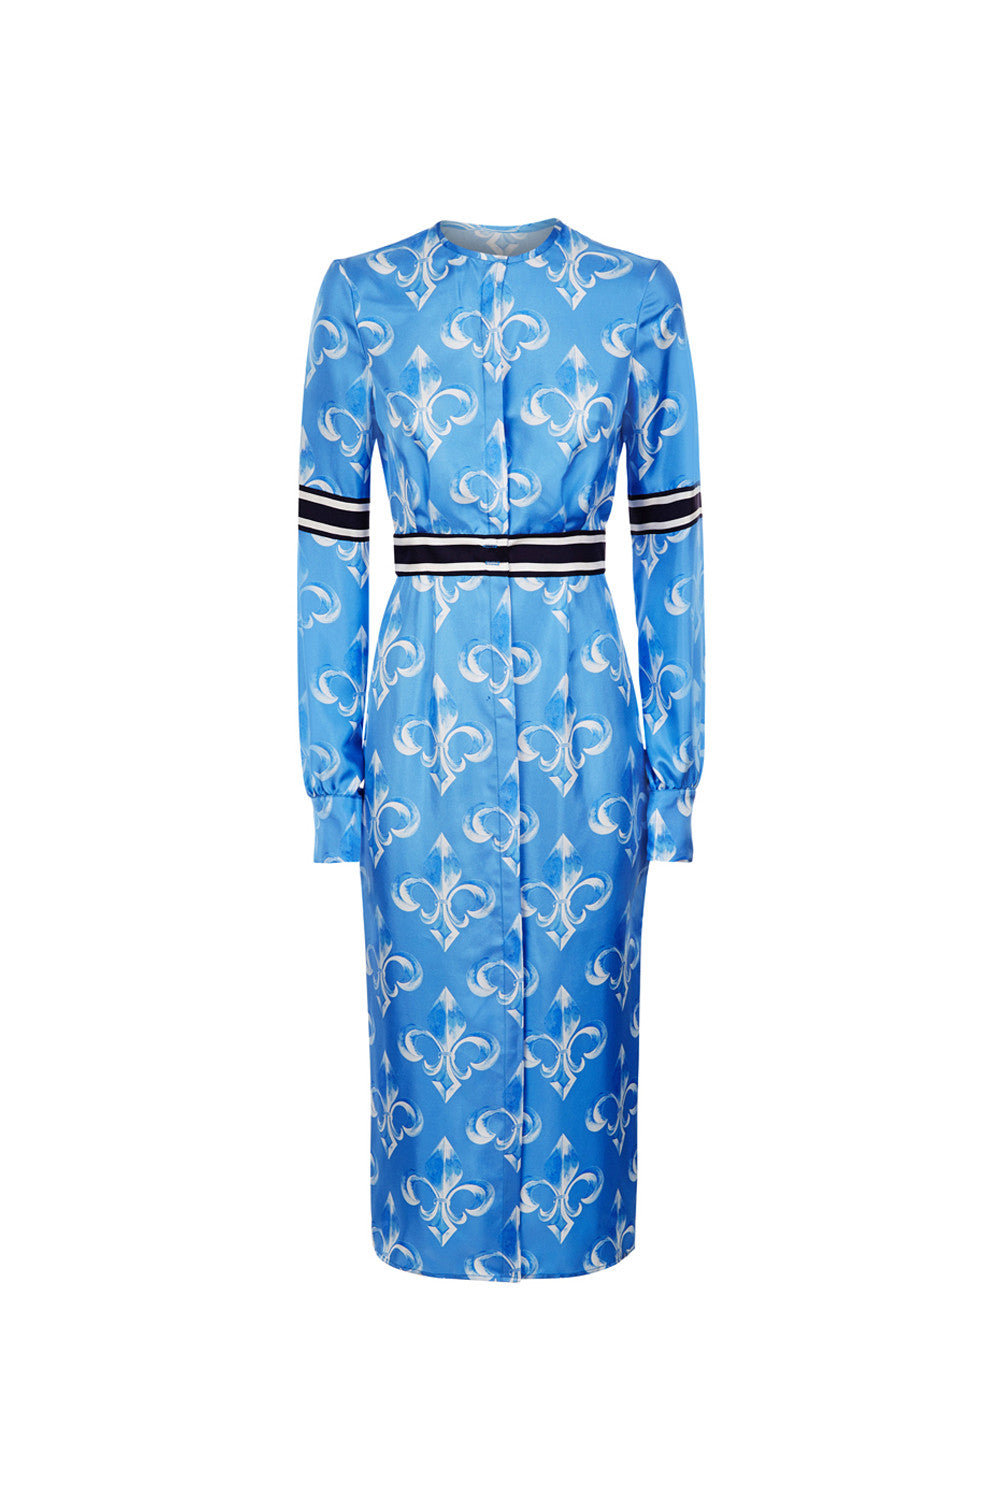 Blythe Midi Dress - Womenswear Outlet - Madderson London